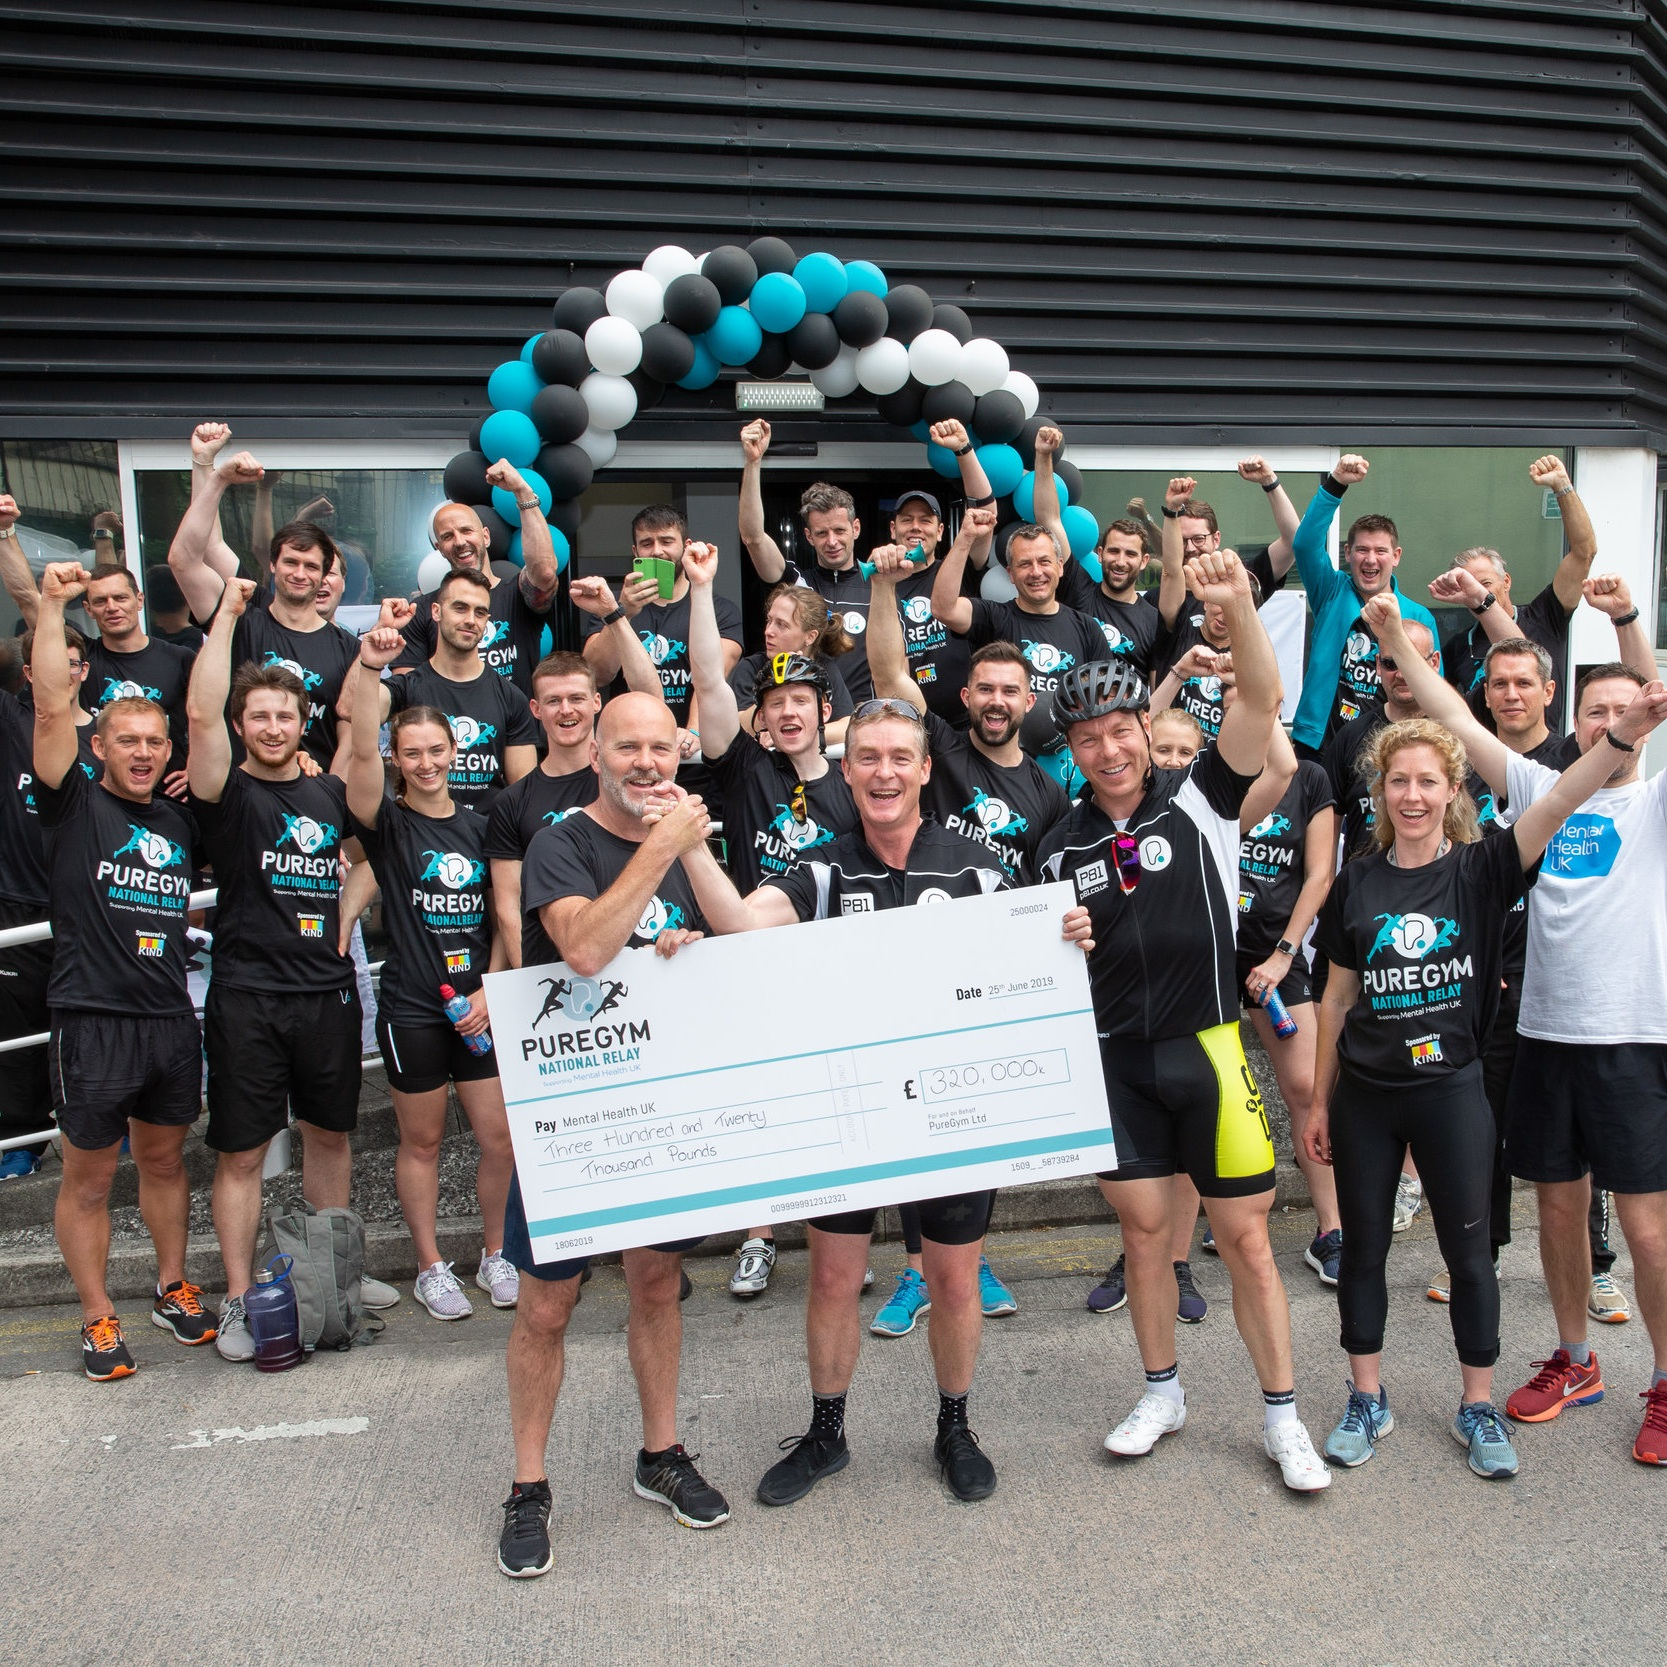 PureGym National Relay cheque giving